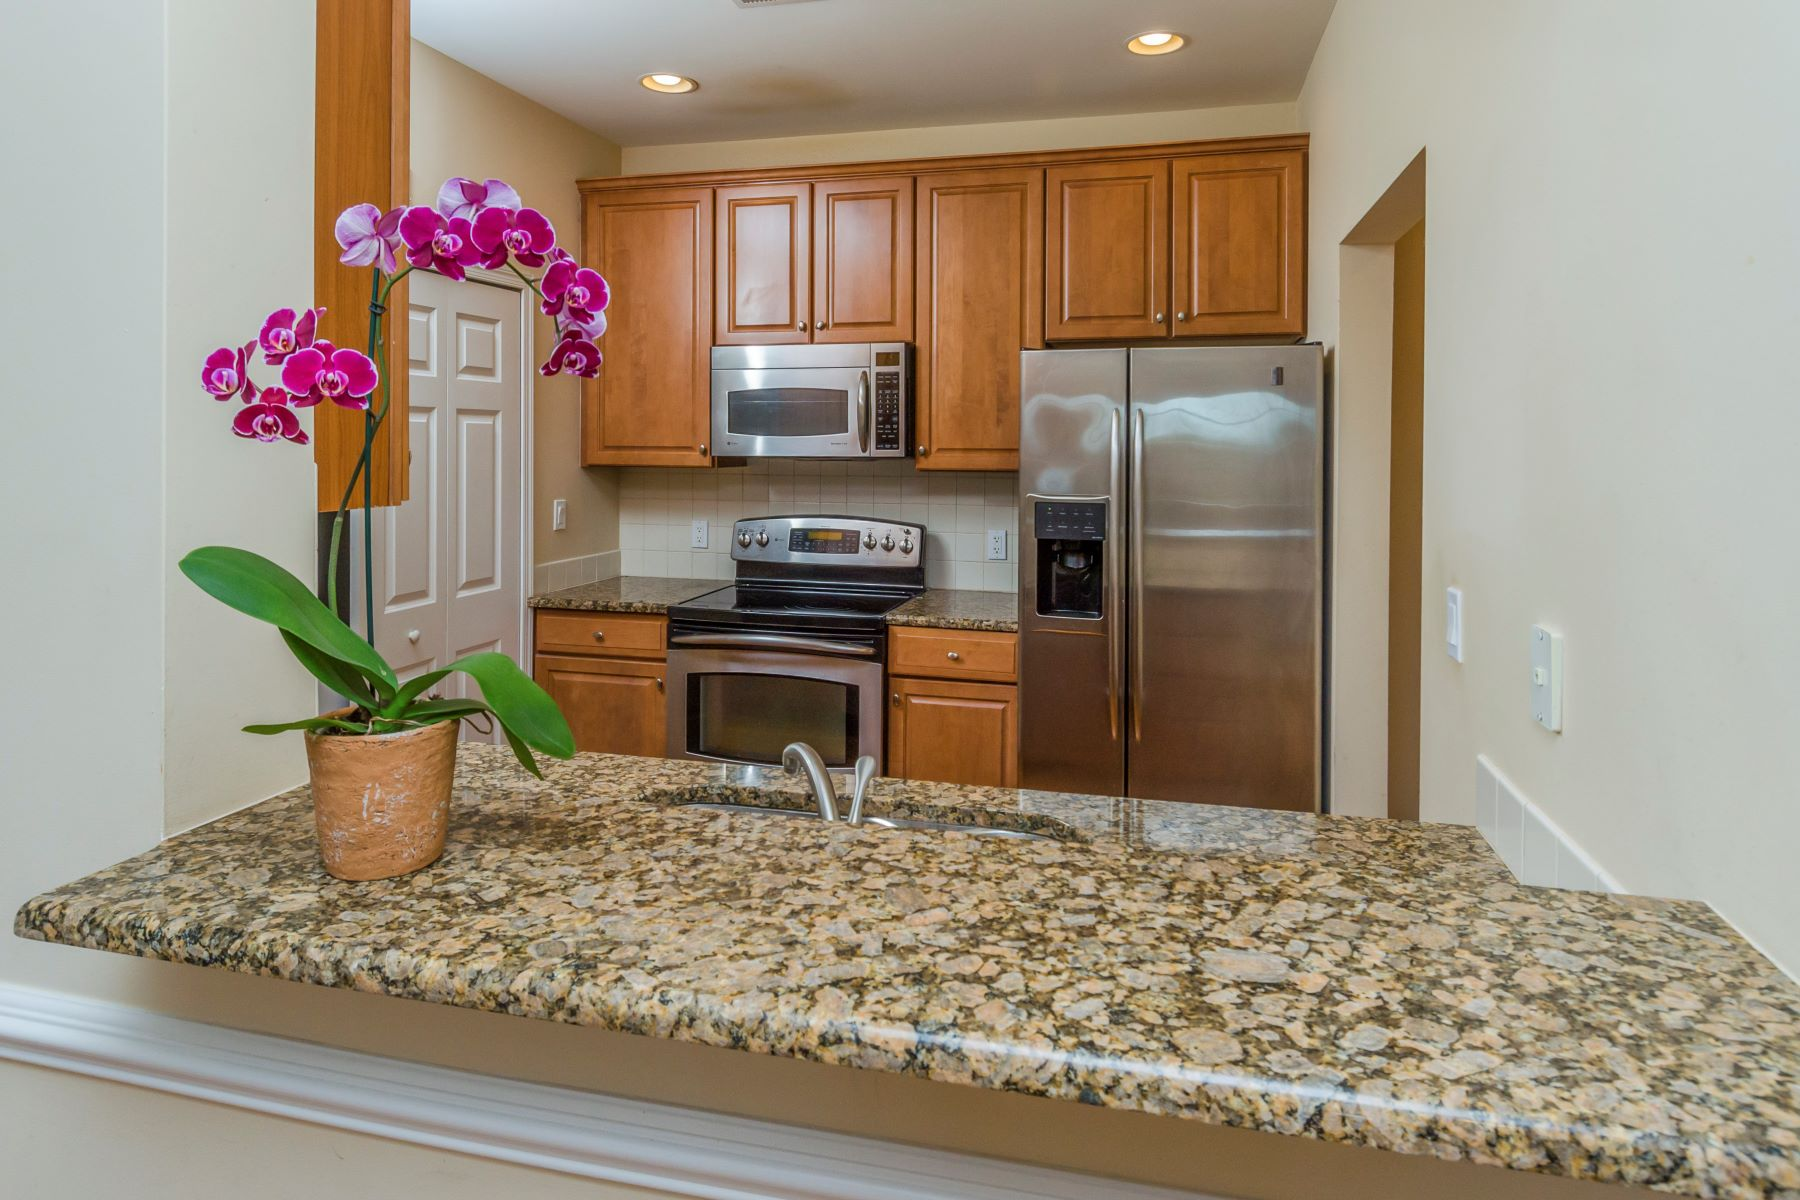 Additional photo for property listing at Rare Opportunity for a One Bedroom Unit at Highlands at Cranbury Brook 100 Middlesex Boulevard #328, Plainsboro, ニュージャージー 08536 アメリカ